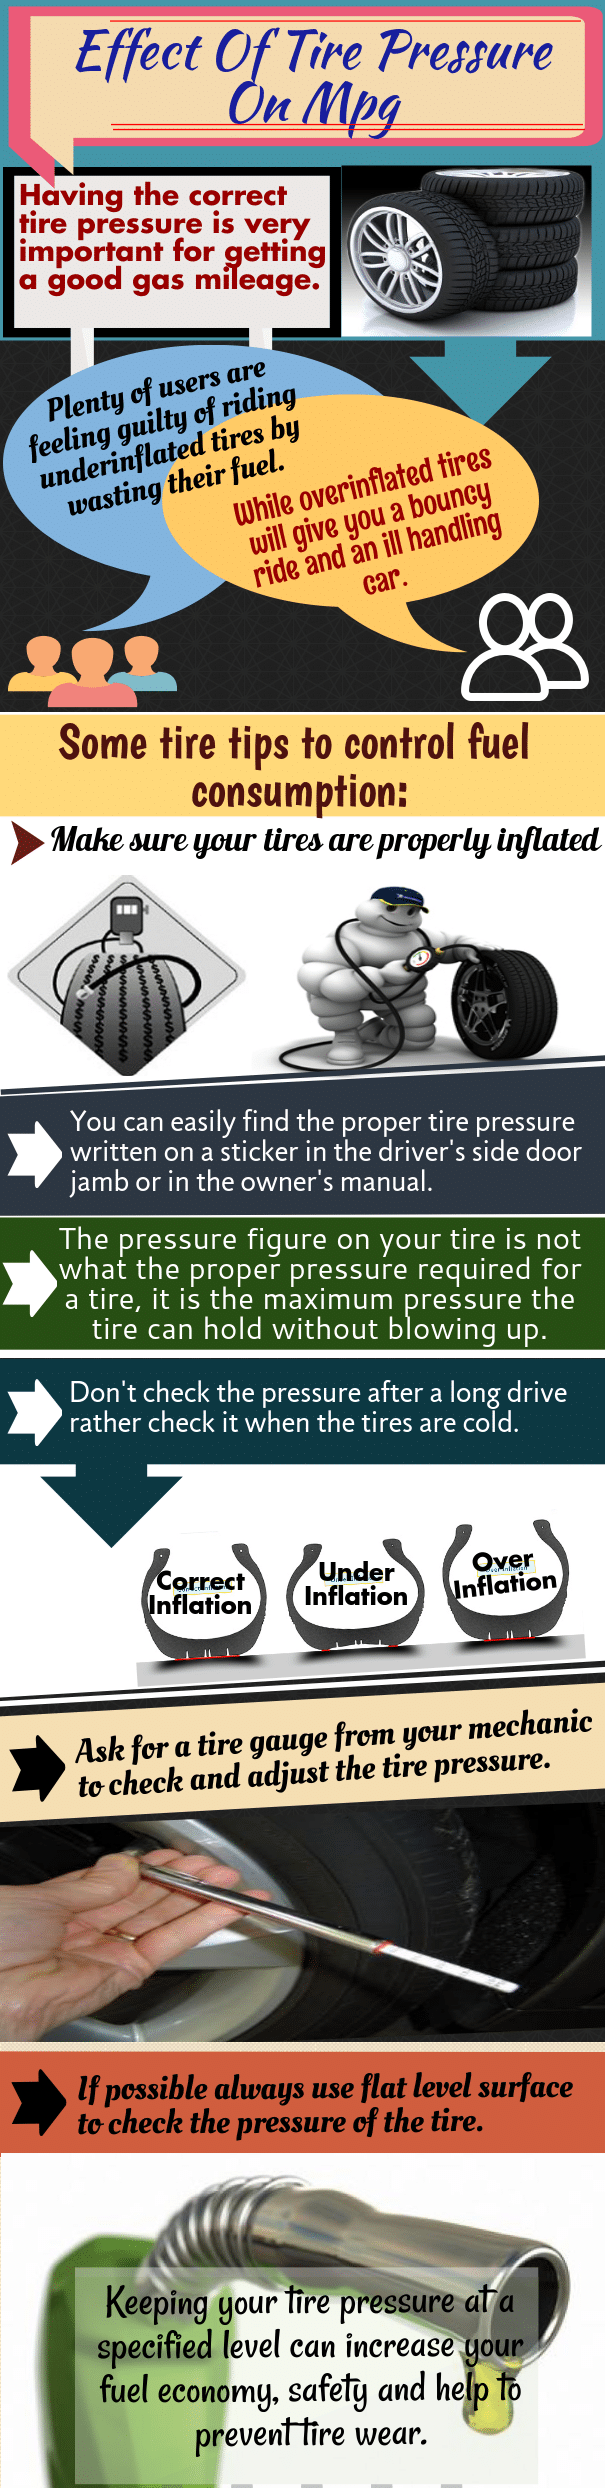 Effect Of Tire Pressure On MPG